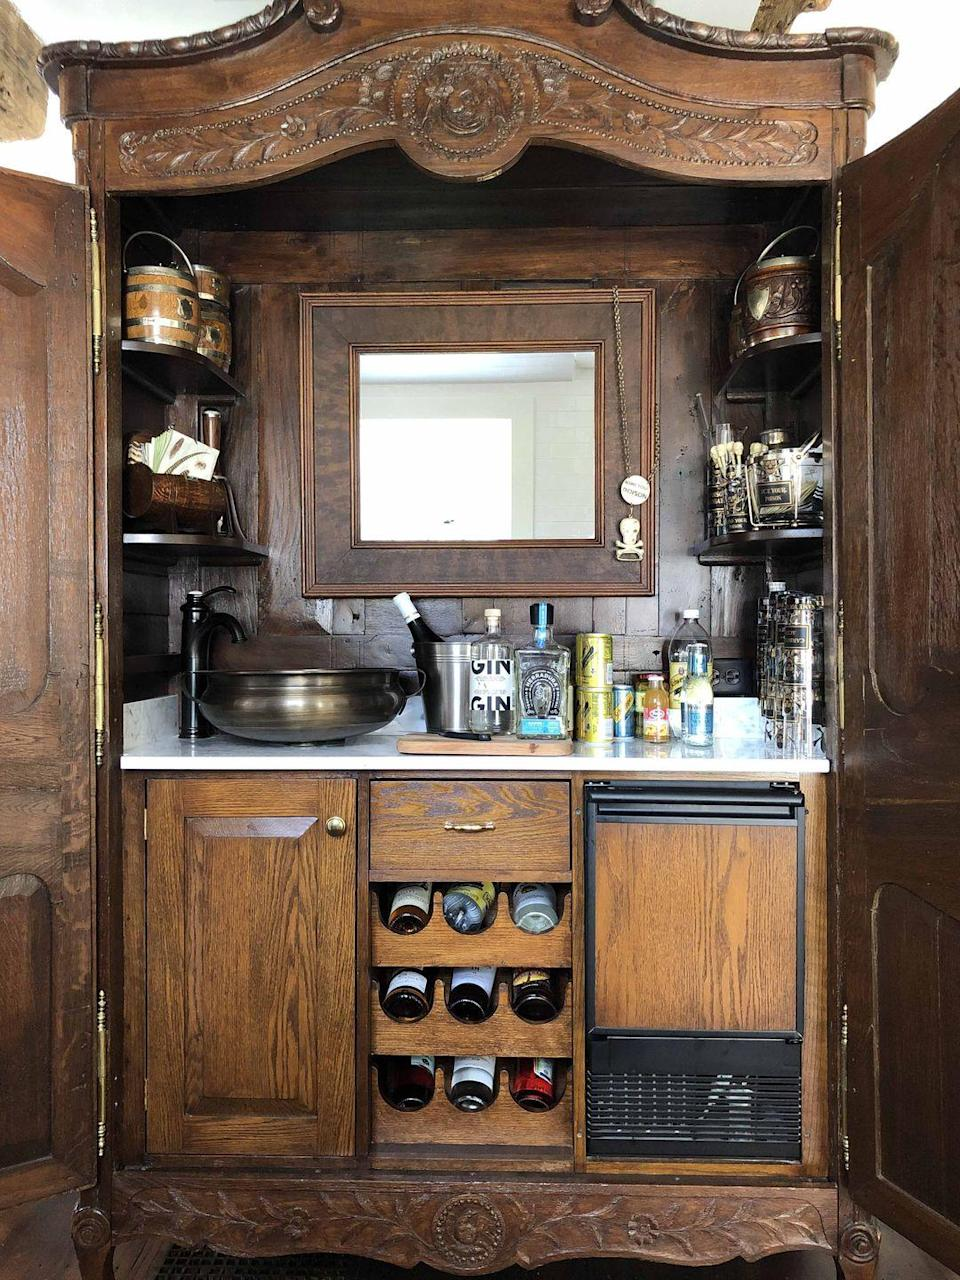 """<p>At her home in Nantucket, Boston-based designer Elizabeth Georgantas converted an antique armoire into the <a href=""""https://www.veranda.com/decorating-ideas/a29529319/guide-to-party-closets/"""" rel=""""nofollow noopener"""" target=""""_blank"""" data-ylk=""""slk:ultimate party closet"""" class=""""link rapid-noclick-resp"""">ultimate party closet</a>: a home bar that's fitted with a small sink and icemaker, along with wine storage and shelves for her vintage barware collection. </p><p><a class=""""link rapid-noclick-resp"""" href=""""https://go.redirectingat.com?id=74968X1596630&url=https%3A%2F%2Fwww.etsy.com%2Flisting%2F711942561%2Fvintage-mid-century-martini-cocktail-set%3Fgpla%3D1%26gao%3D1%26gclid%3DEAIaIQobChMIgJWU2rOg6QIViorICh1WhQYSEAYYBSABEgIyb_D_BwE&sref=https%3A%2F%2Fwww.veranda.com%2Fdecorating-ideas%2Fg28837805%2Fhome-bar-ideas%2F"""" rel=""""nofollow noopener"""" target=""""_blank"""" data-ylk=""""slk:Find Similar Vintage Barware Here"""">Find Similar Vintage Barware Here</a></p>"""